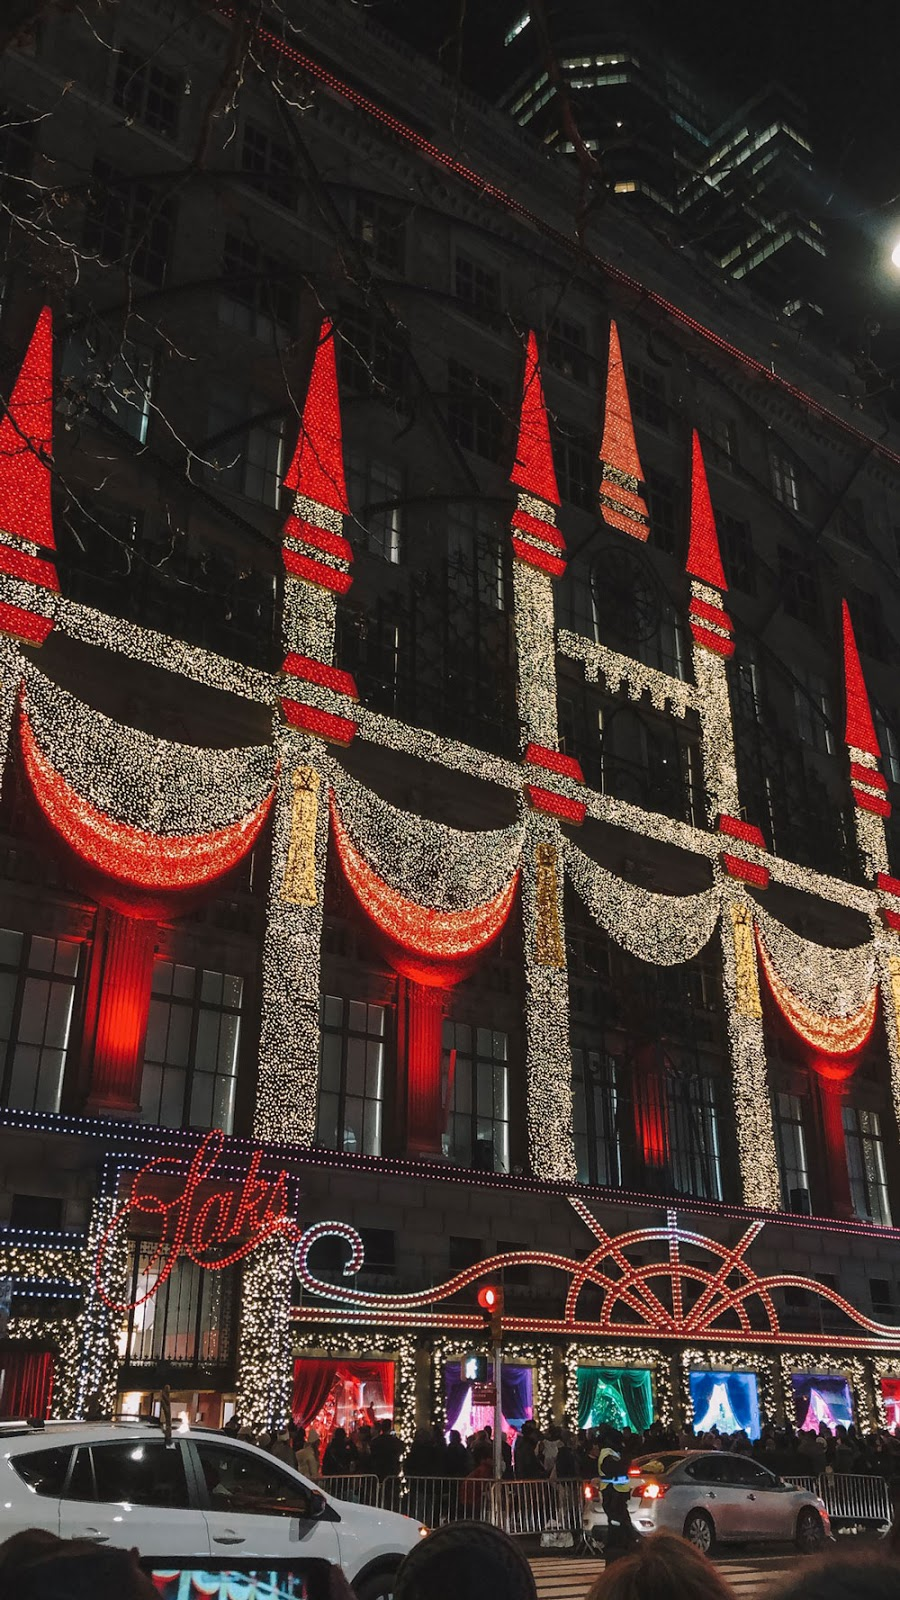 Sak's Fifth Avenue Christmas Light Display